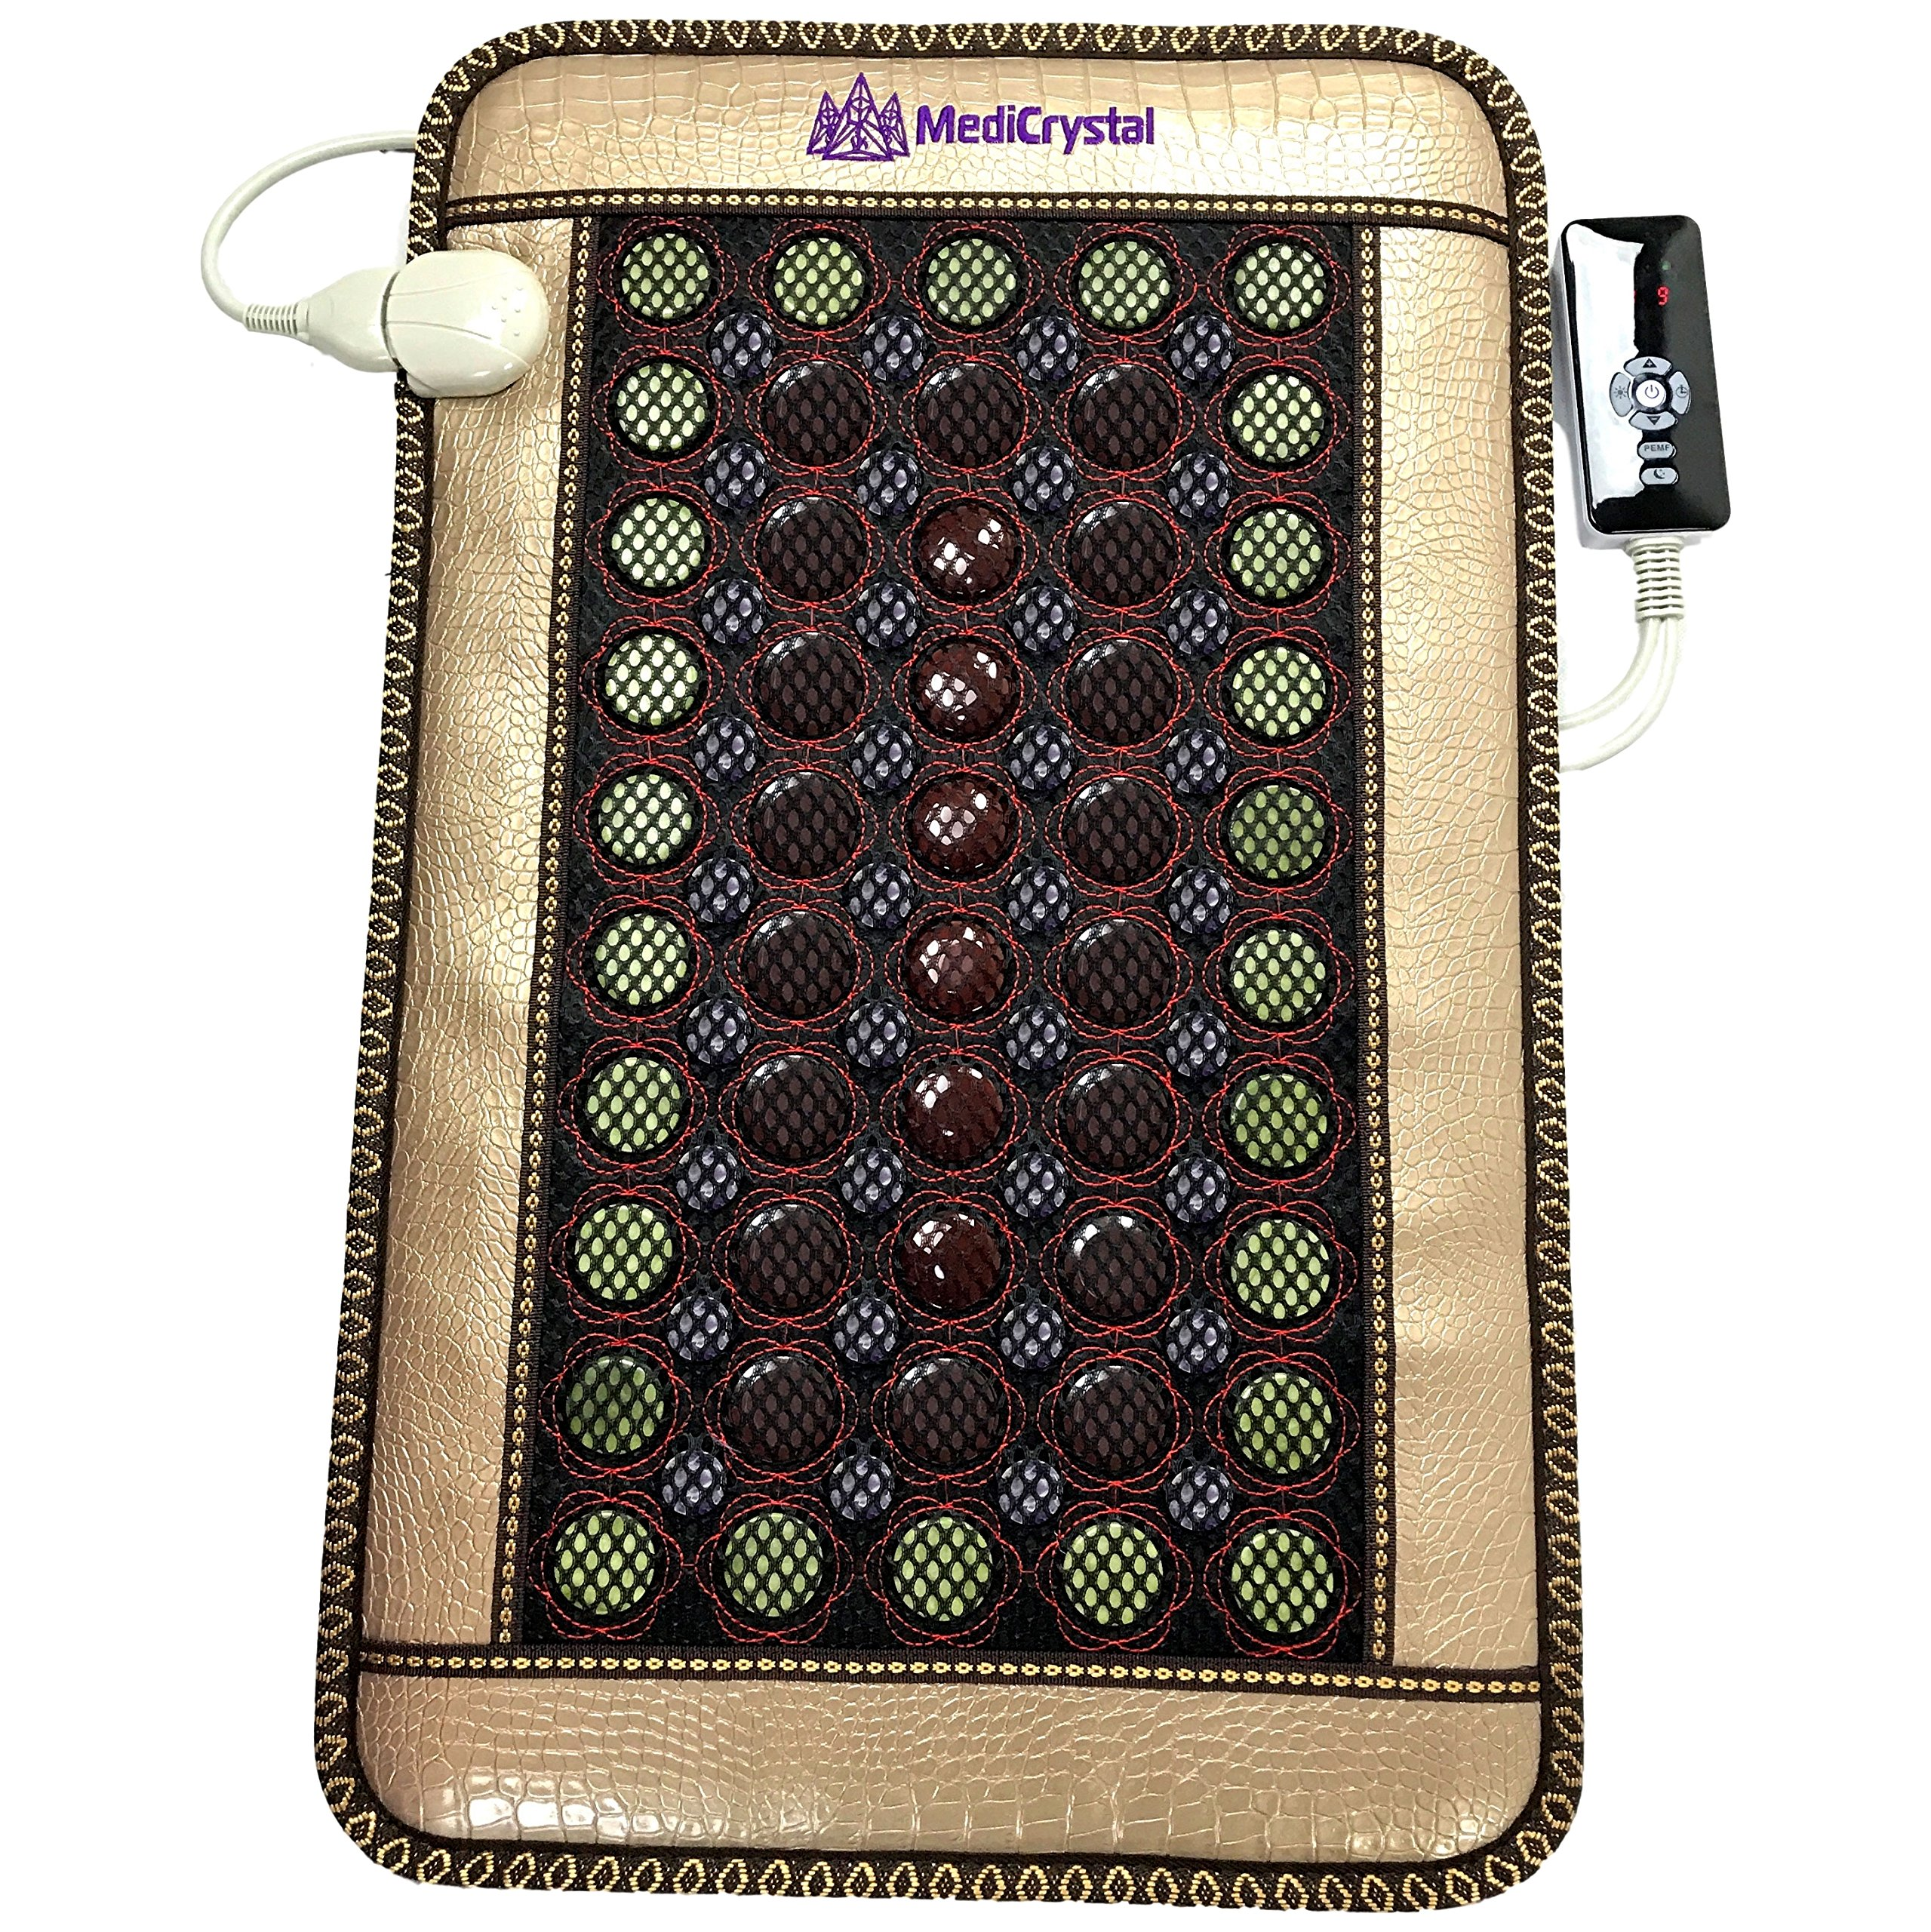 4 Gems FIR Bio Magnetic Mat - Natural Hot Stones - Amethyst Jade Tourmaline Agate - - Far InfraRed Heating Pad - 10Hz PEMF - Negative Ion - FDA Registered Manufacturer (Mini 32''L x 20''W) by MediCrystal (Image #2)